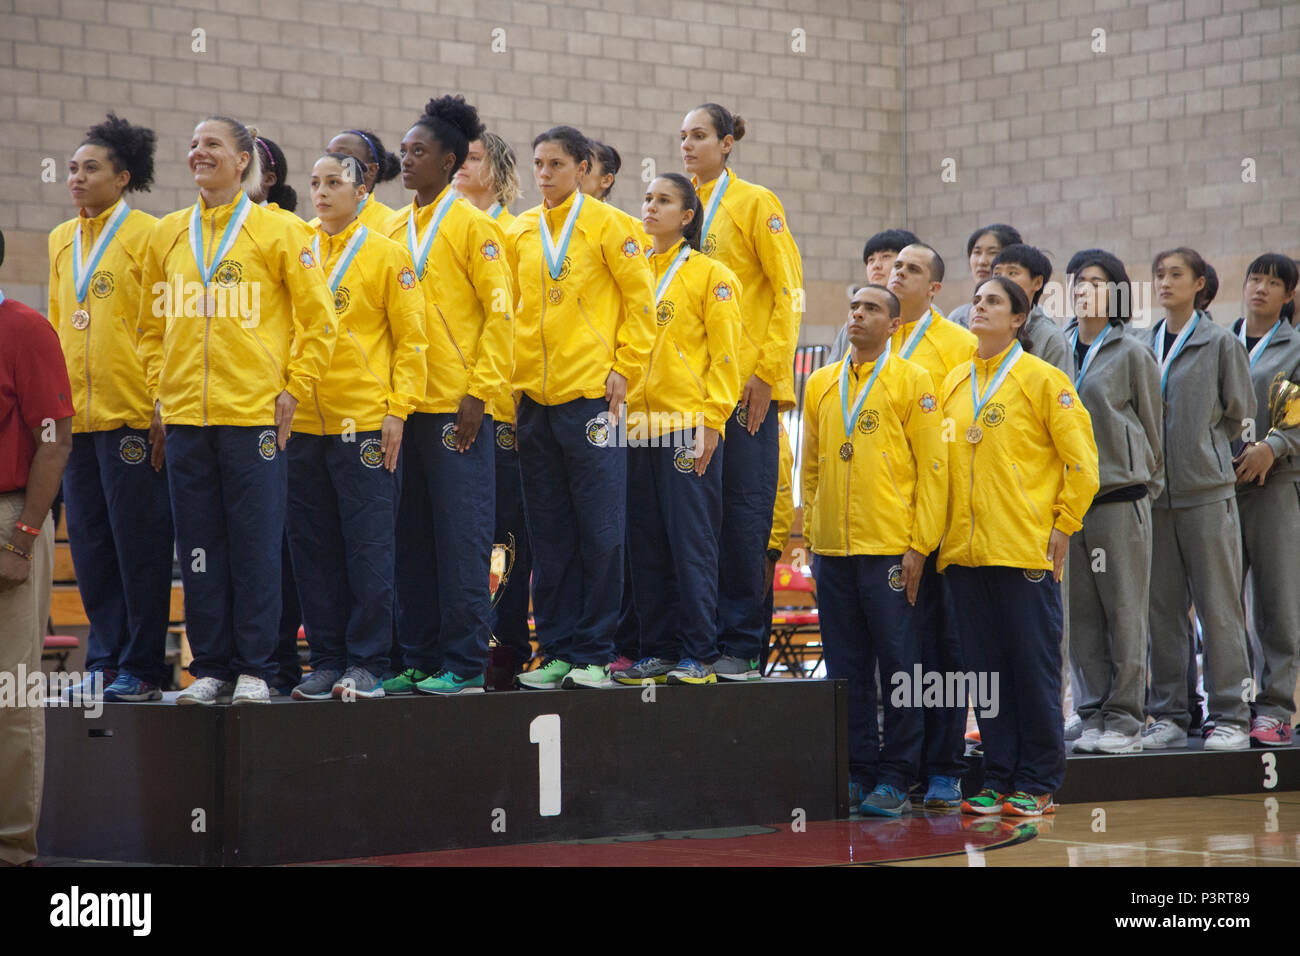 The team representing the Brazil in the World Military Women's Basketball Championship, stand at attention for the playing of their National Anthem during the 2016 Conseil International Du Sport Militaire (CISM) awards ceremony on Camp Pendleton, Calif., July 29, 2016. The CISM championships are hosted around the world and provide an avenue for the United States to project the positive image with valuable military-to-military engagement through sports. (U.S. Marine Corps photo by Cpl. Tyler S. Dietrich) - Stock Image